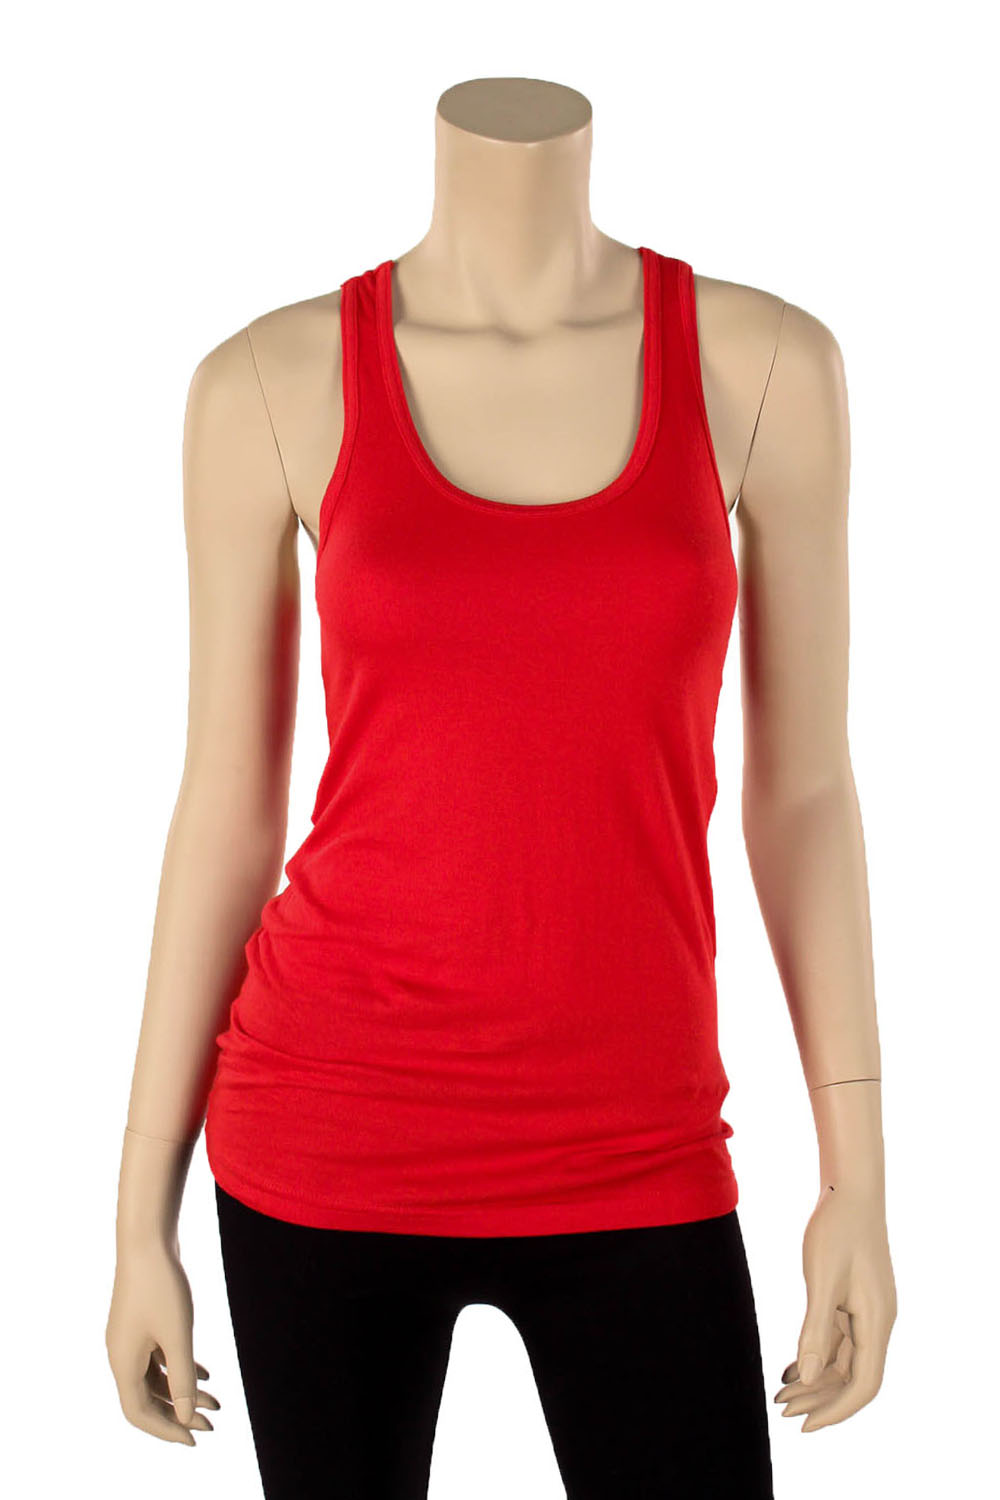 Find great deals on eBay for % cotton tank tops. Shop with confidence.